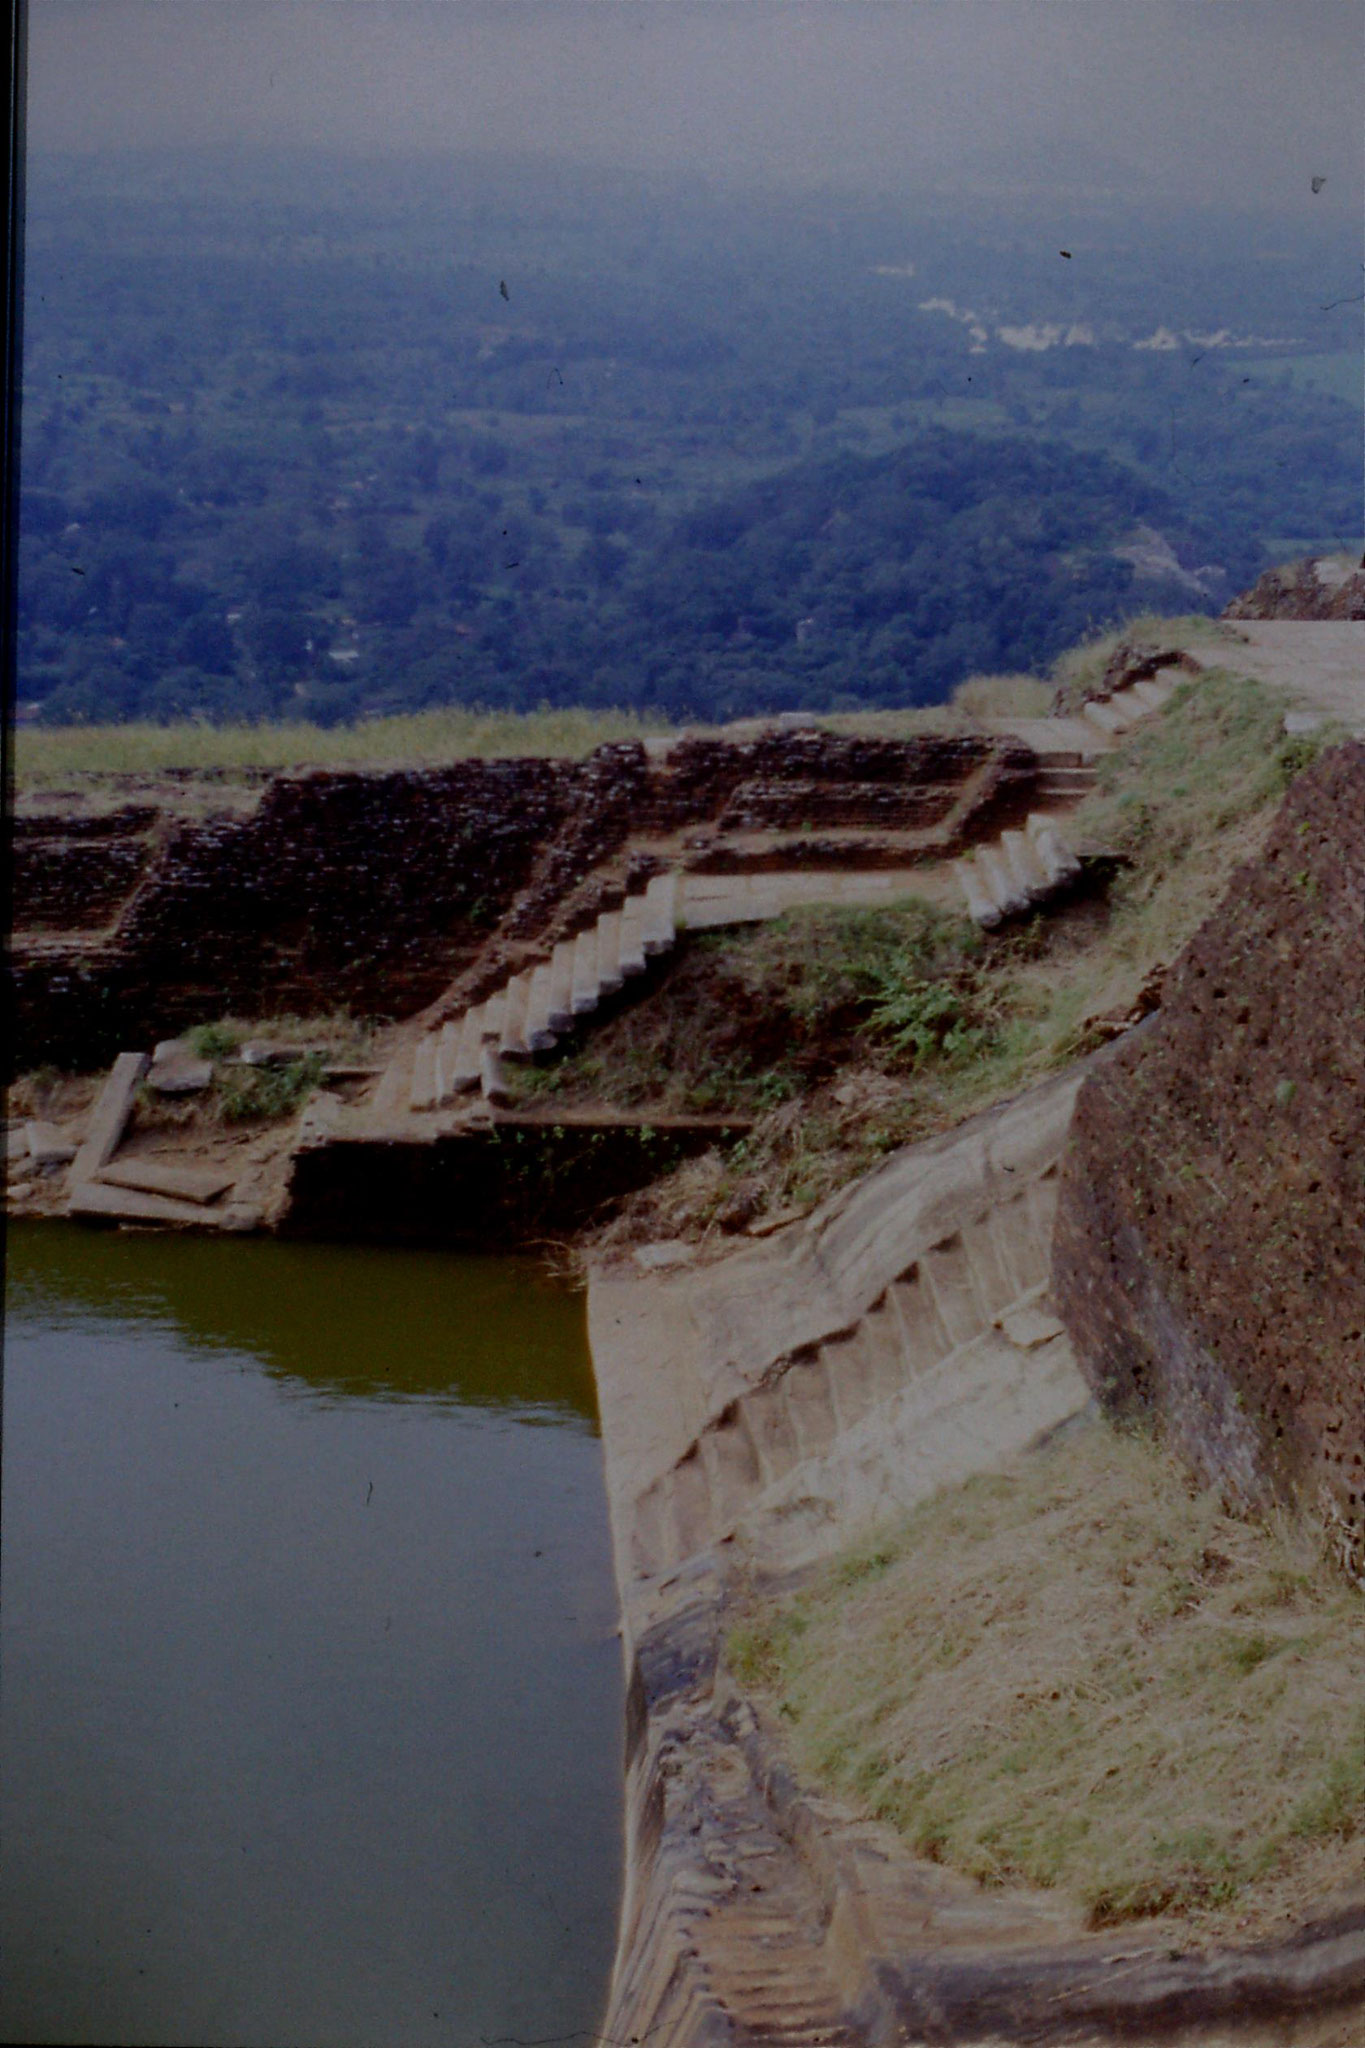 102/30: 7/2/1990 Sigiriya - bathing pools on top of the rock, jungle towards Kandy